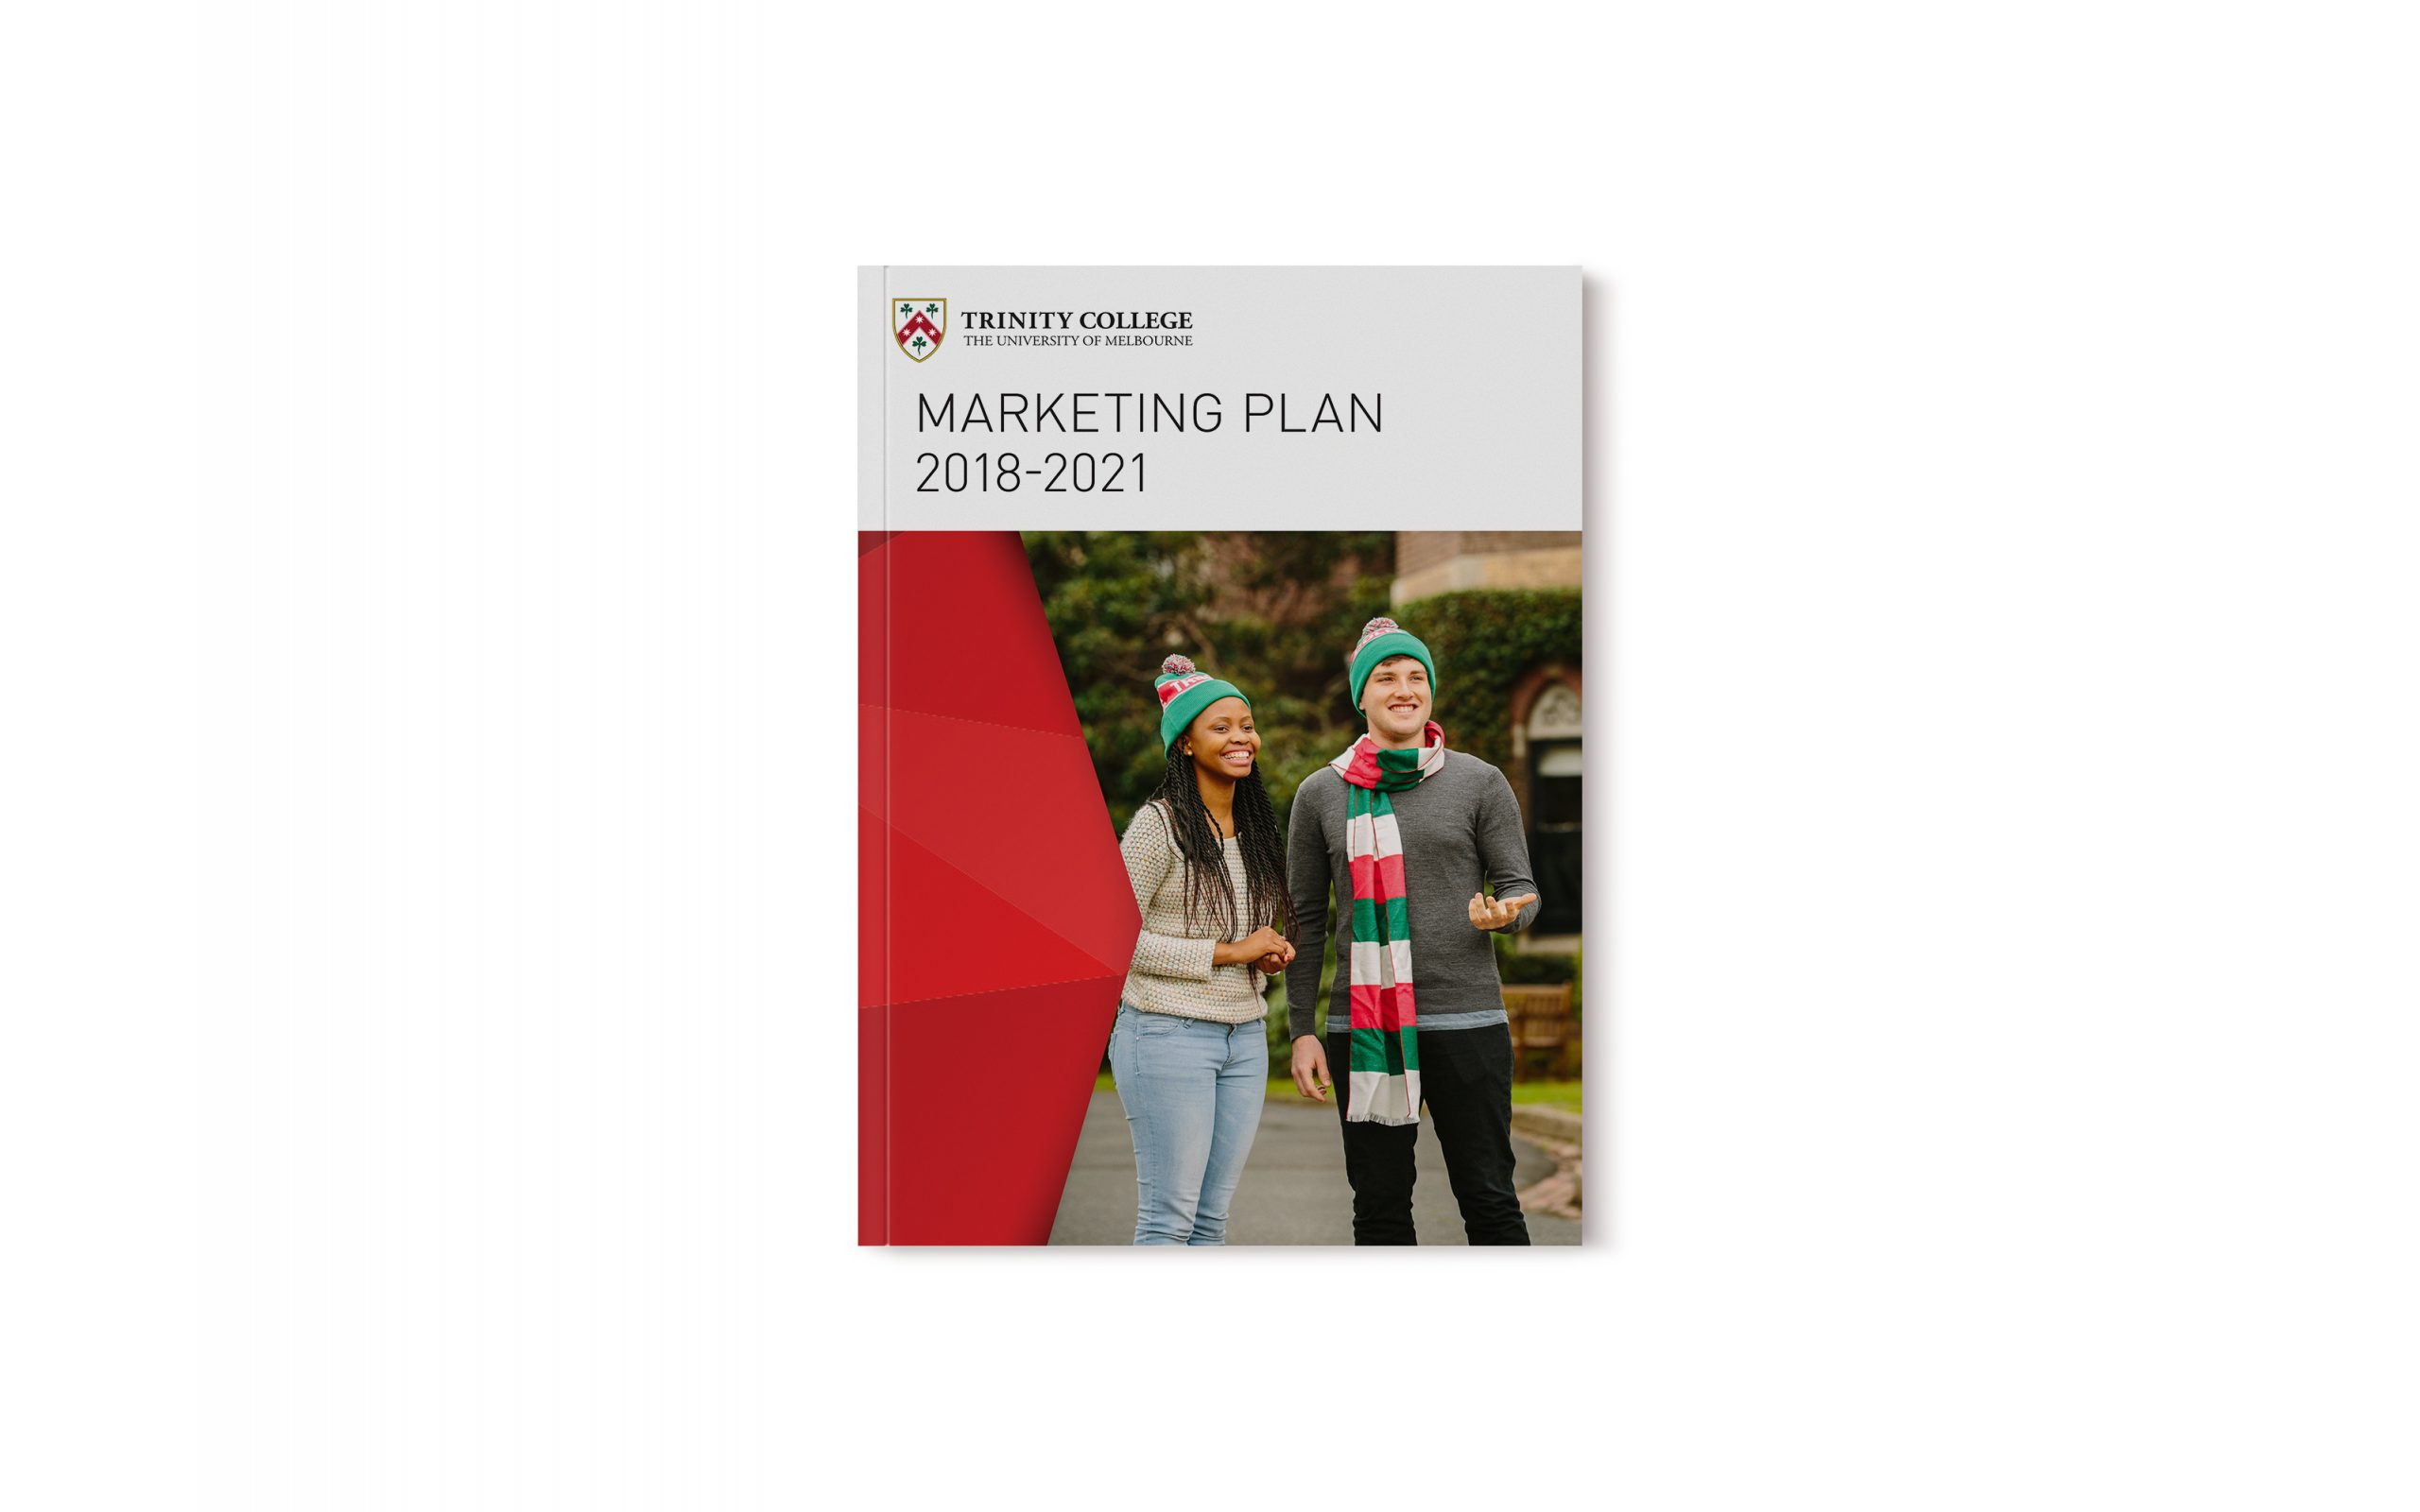 Trinity College Marketing Plan Publication